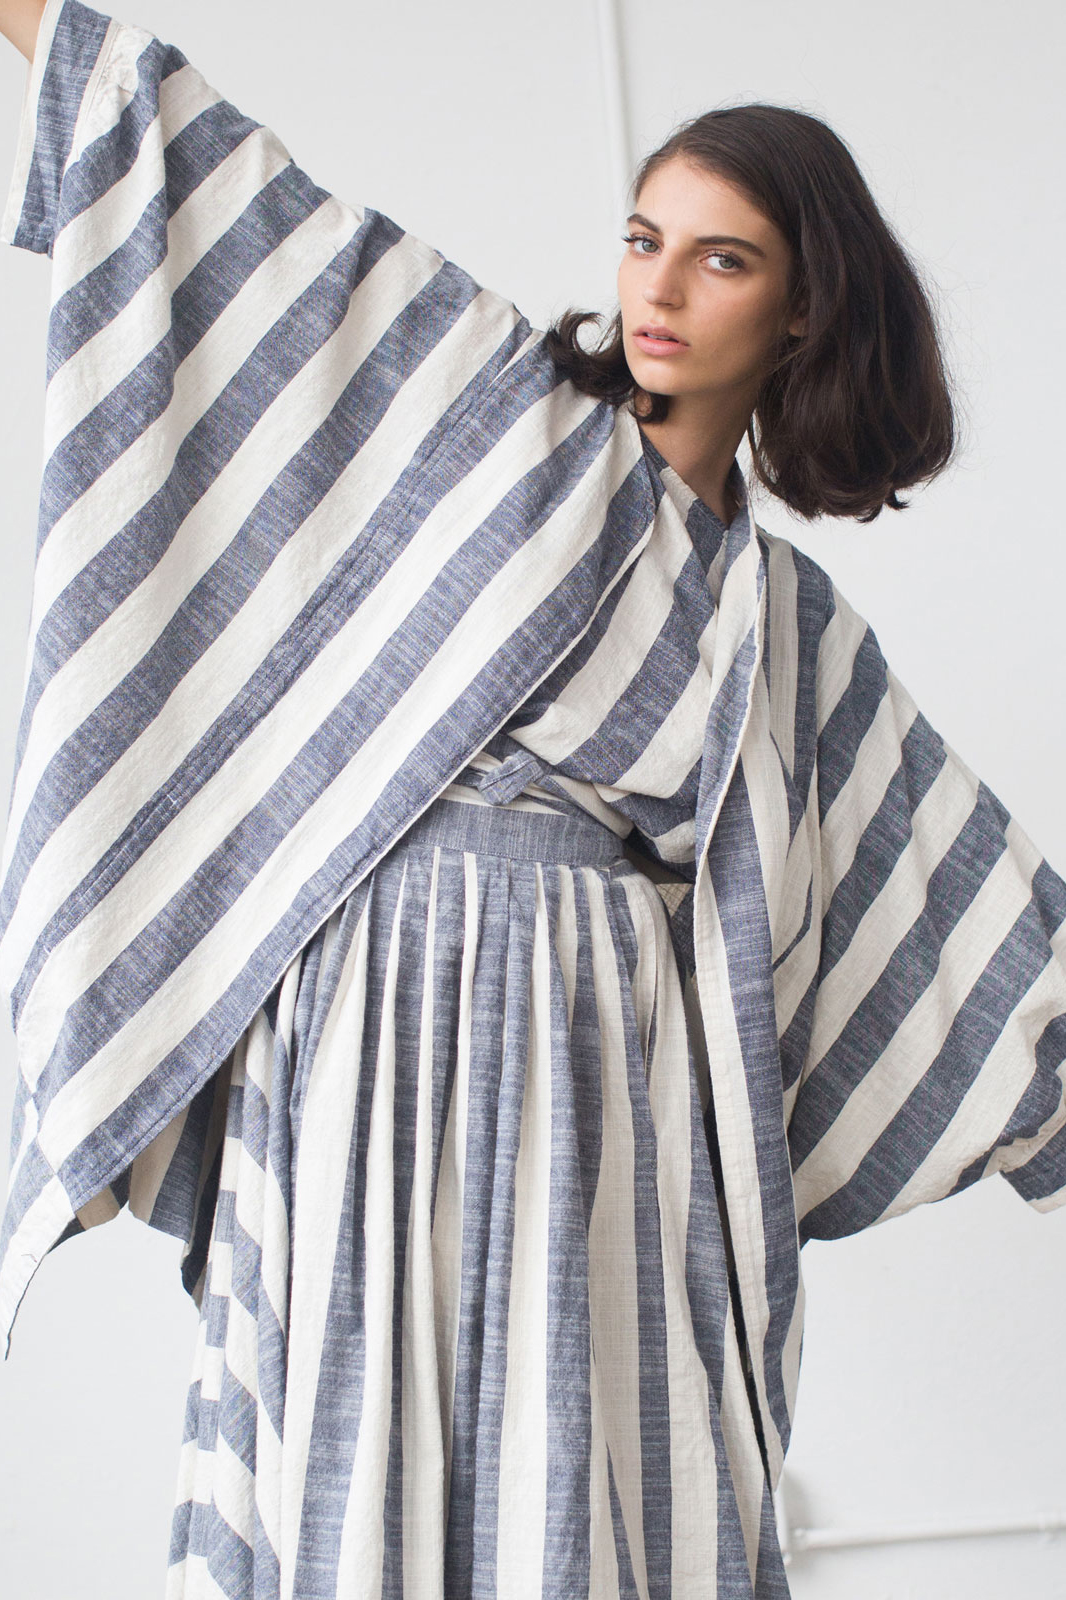 Black Crane – Striped Dress made in LA, inspired by Japanese culture